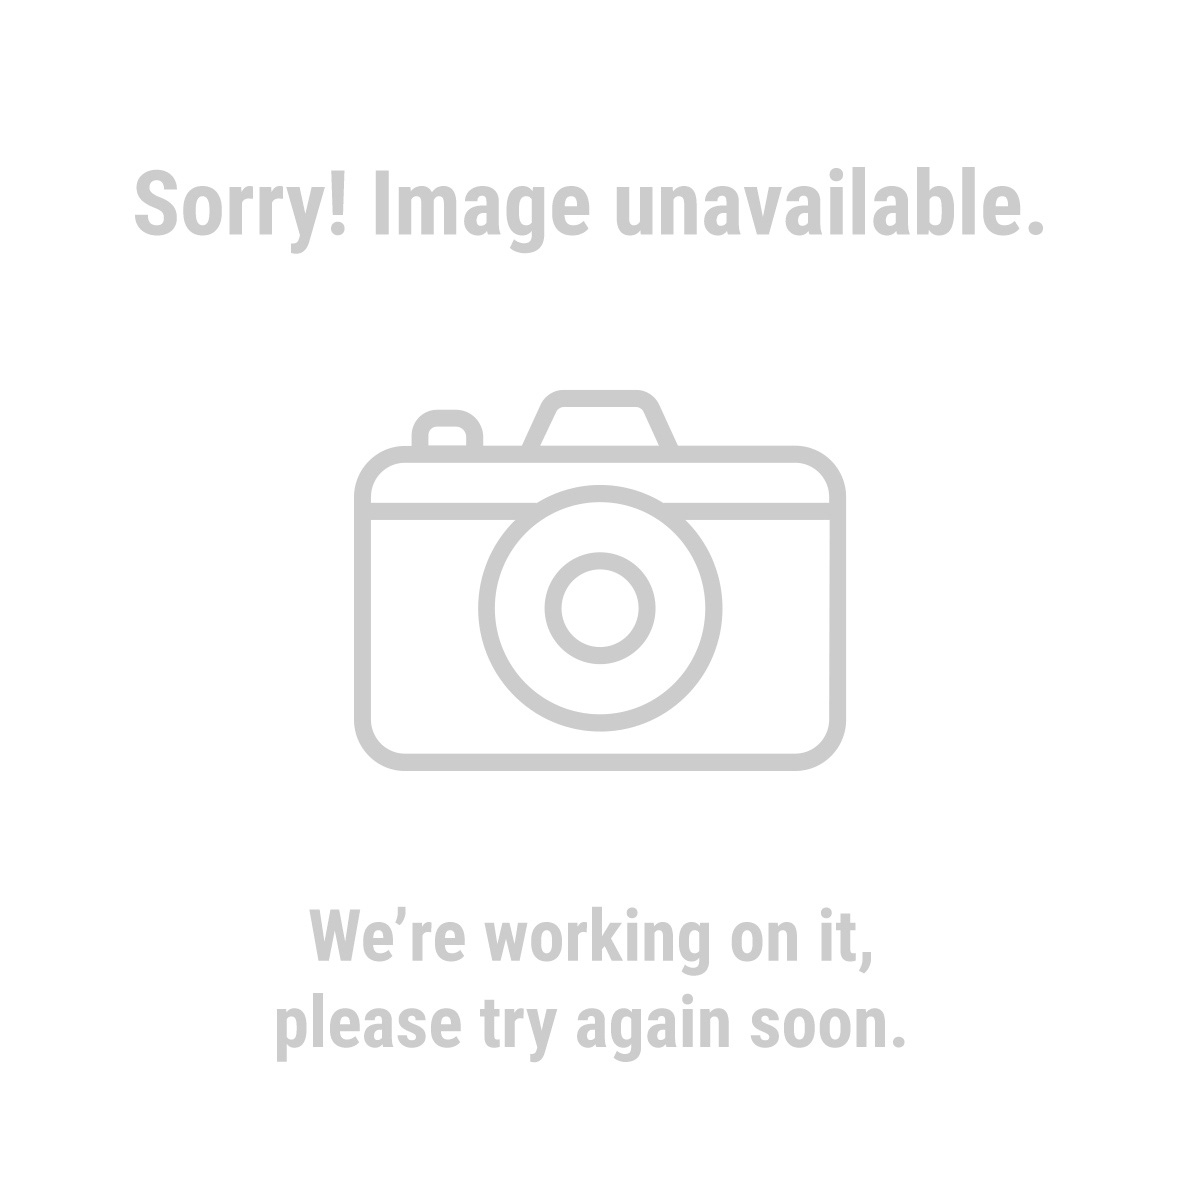 "Haul-Master 42709 950 LB Capacity 8 Ft Utility Trailer Foldable - 4x8 with 8"" Wheels"